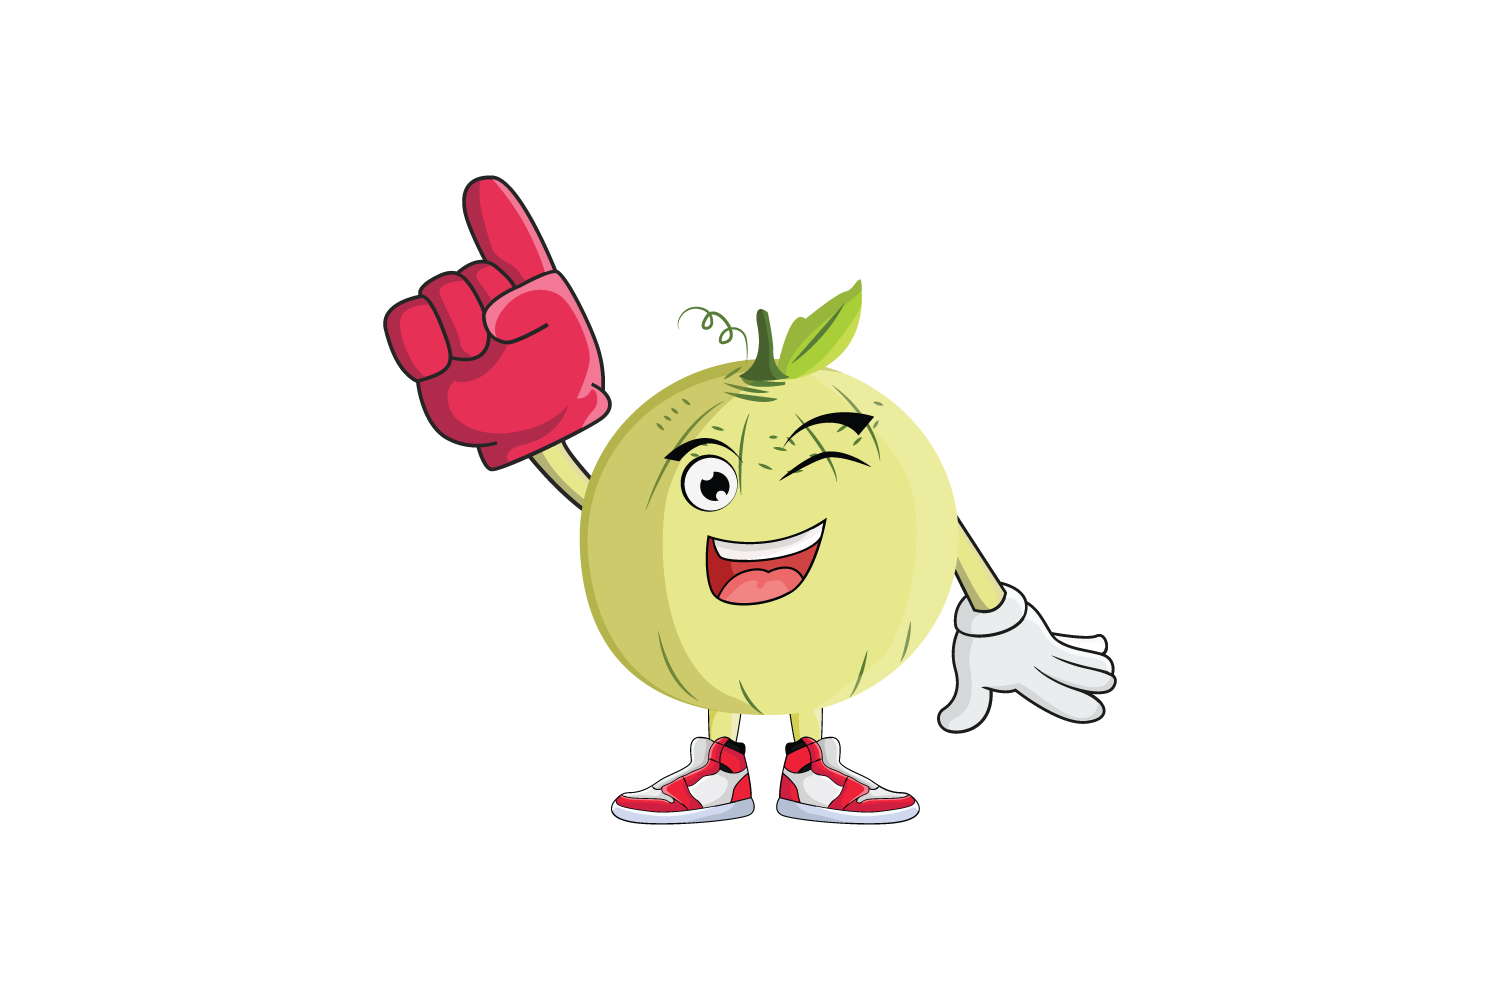 Cantaloupe Fruit Cartoon Character Graphic By Printablesplazza Creative Fabrica Download in under 30 seconds. creative fabrica